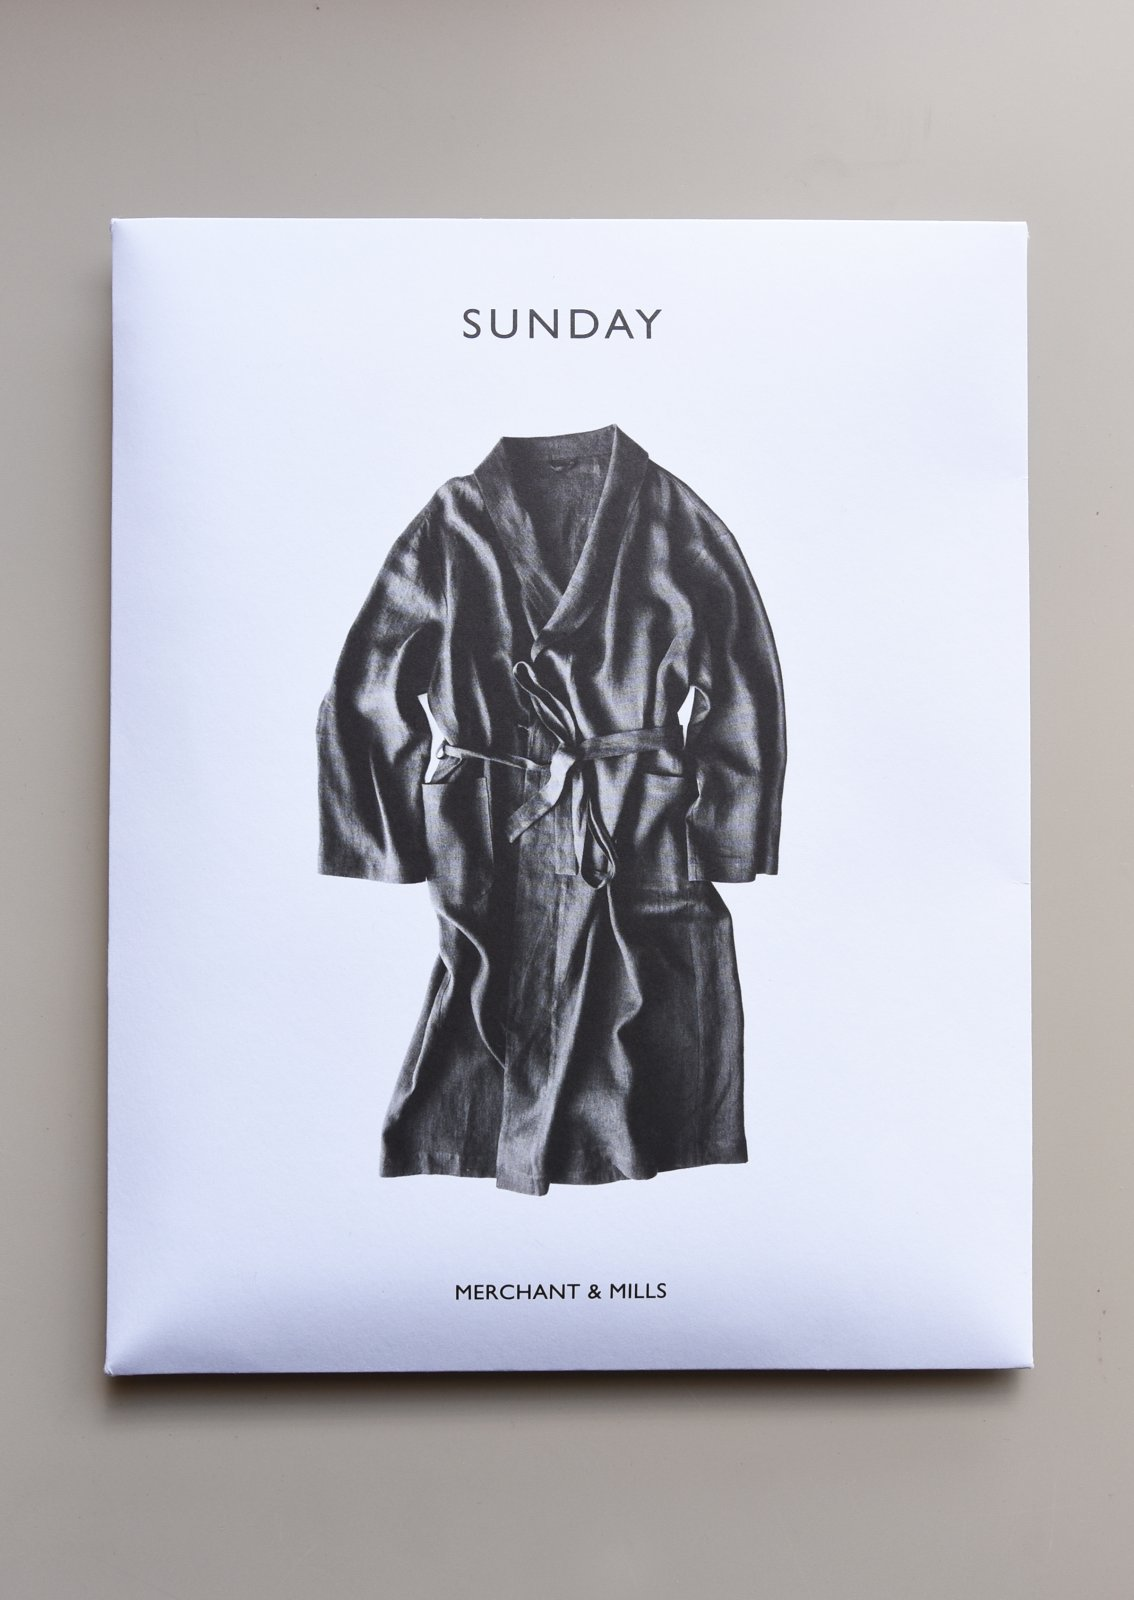 Merchant & Mills - The Sunday Robe